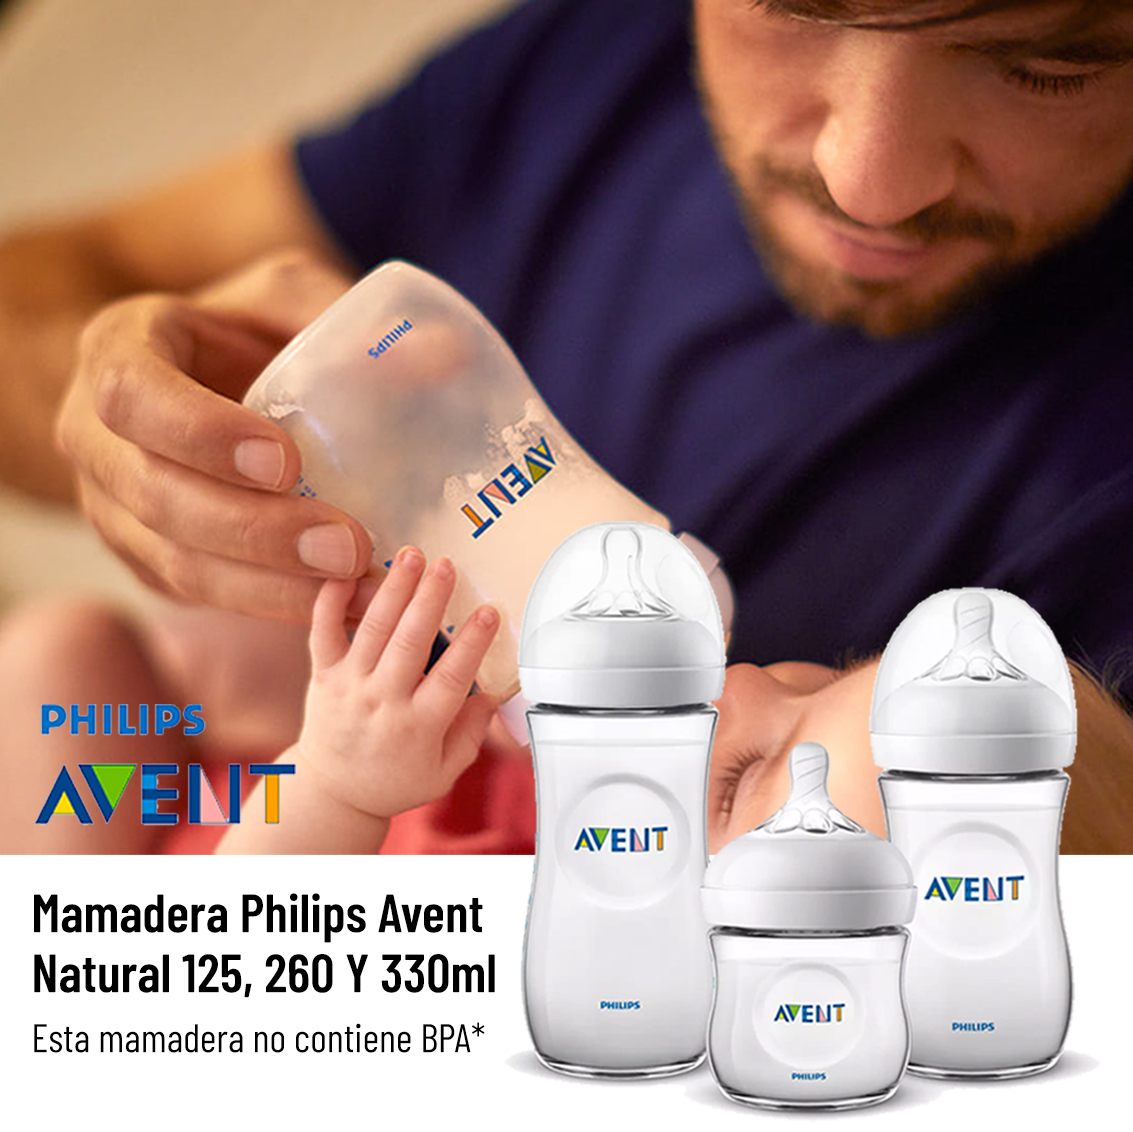 AVENT MOBILE